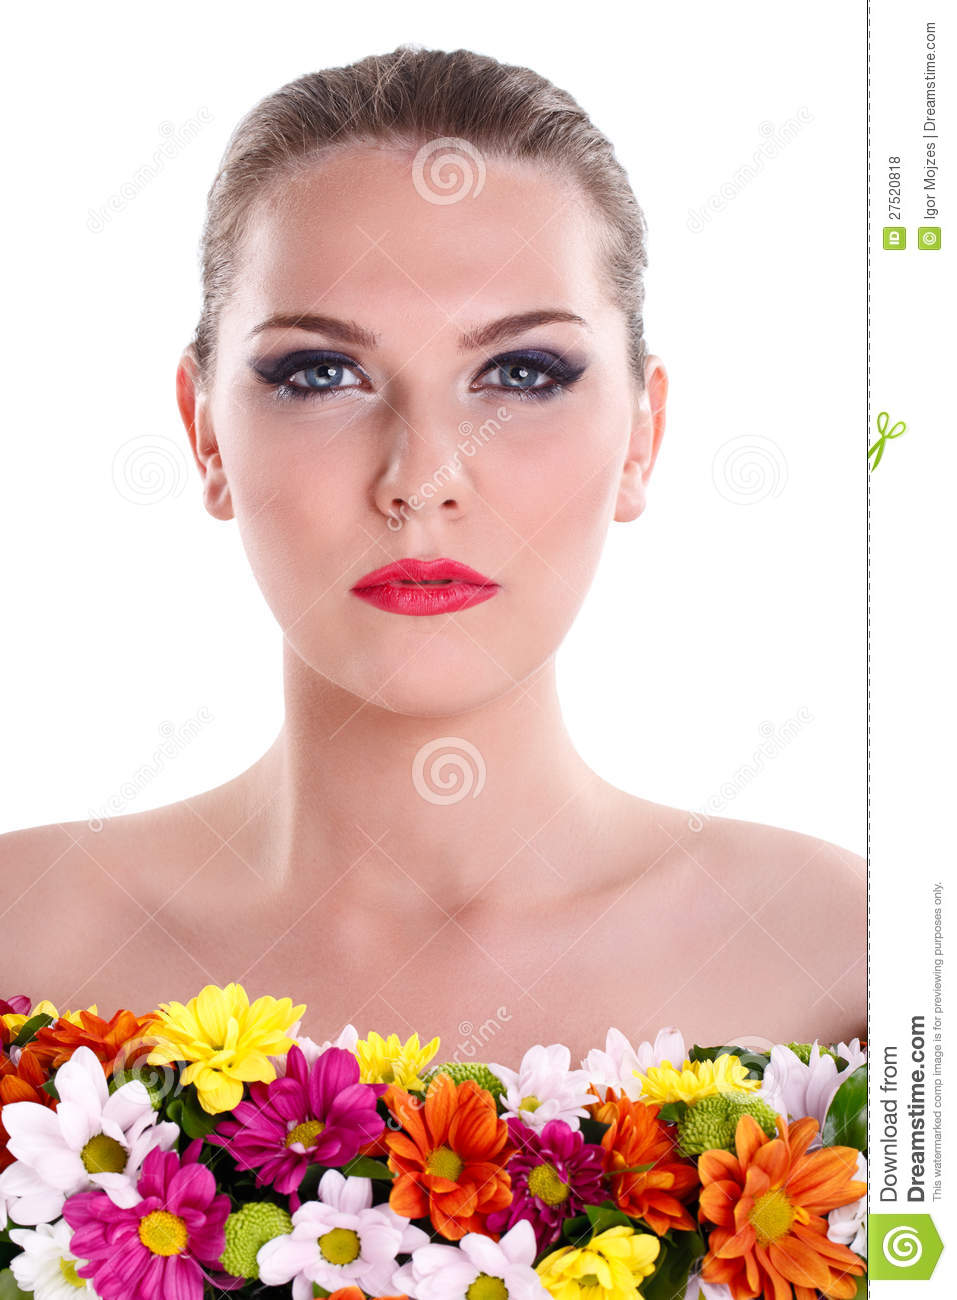 Naked woman with flowers